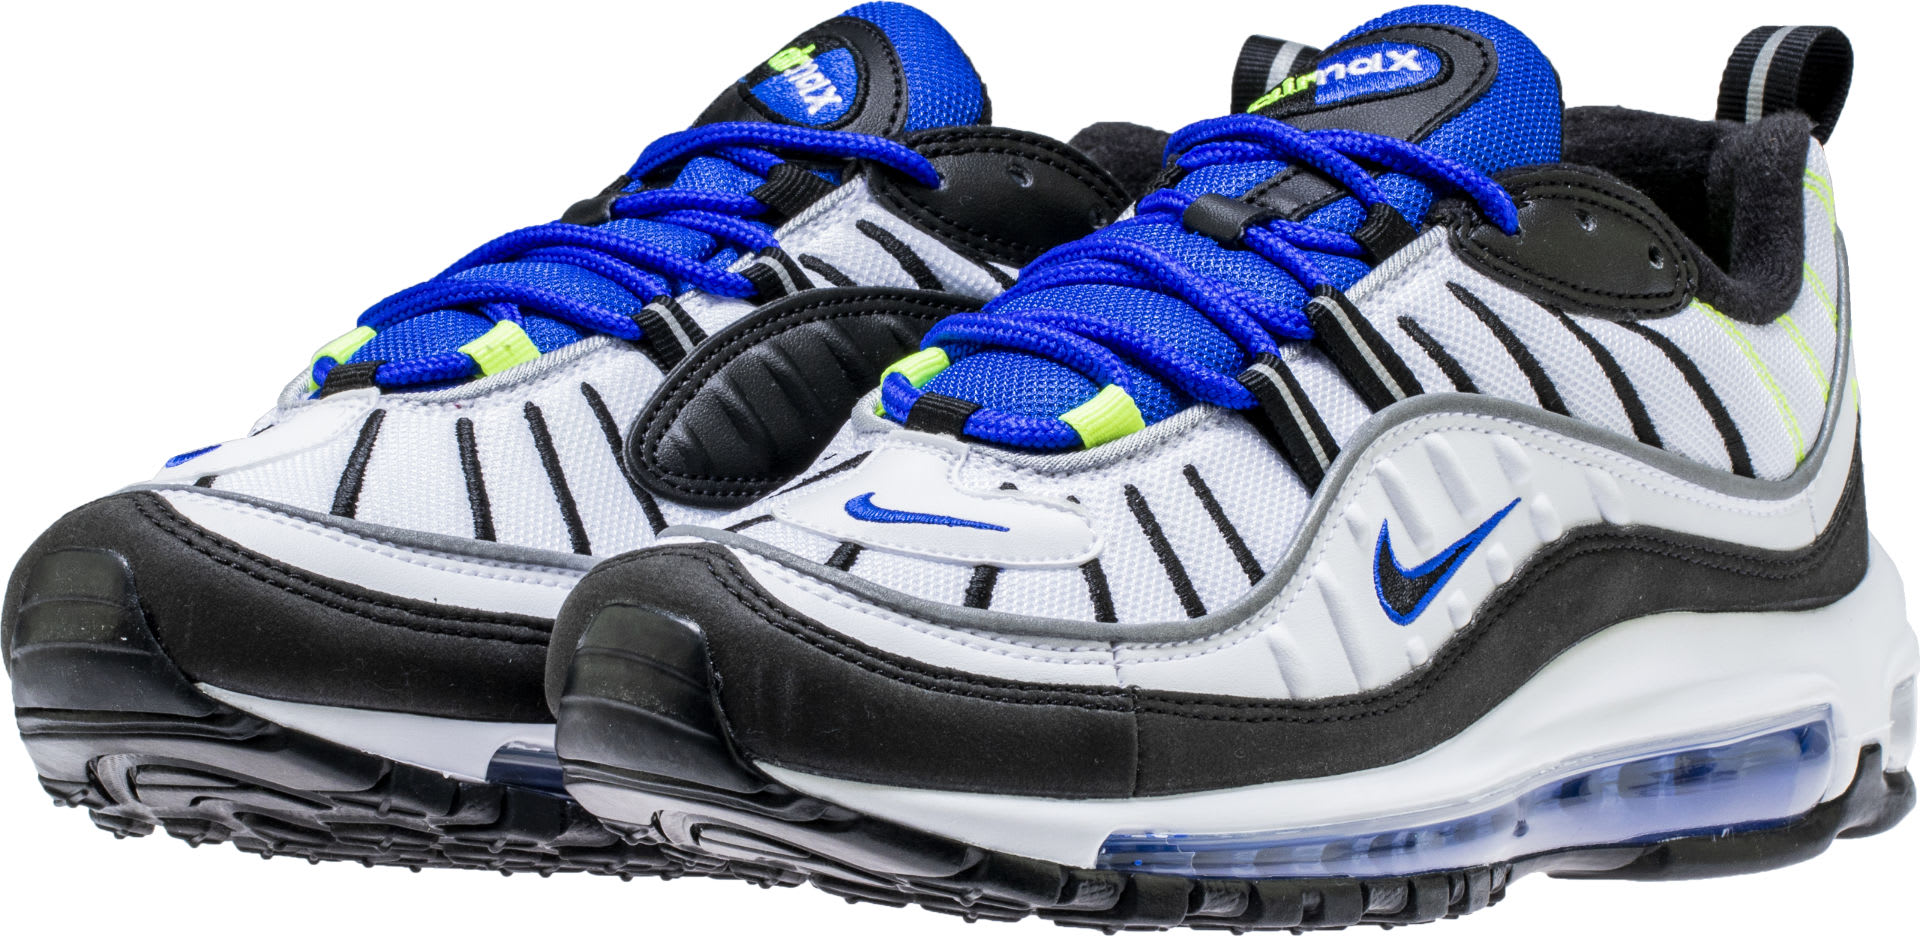 newest collection 1ebcd b8851 Nike Air Max 98 White Black Racer Blue Volt Release Date 640744-103 Front